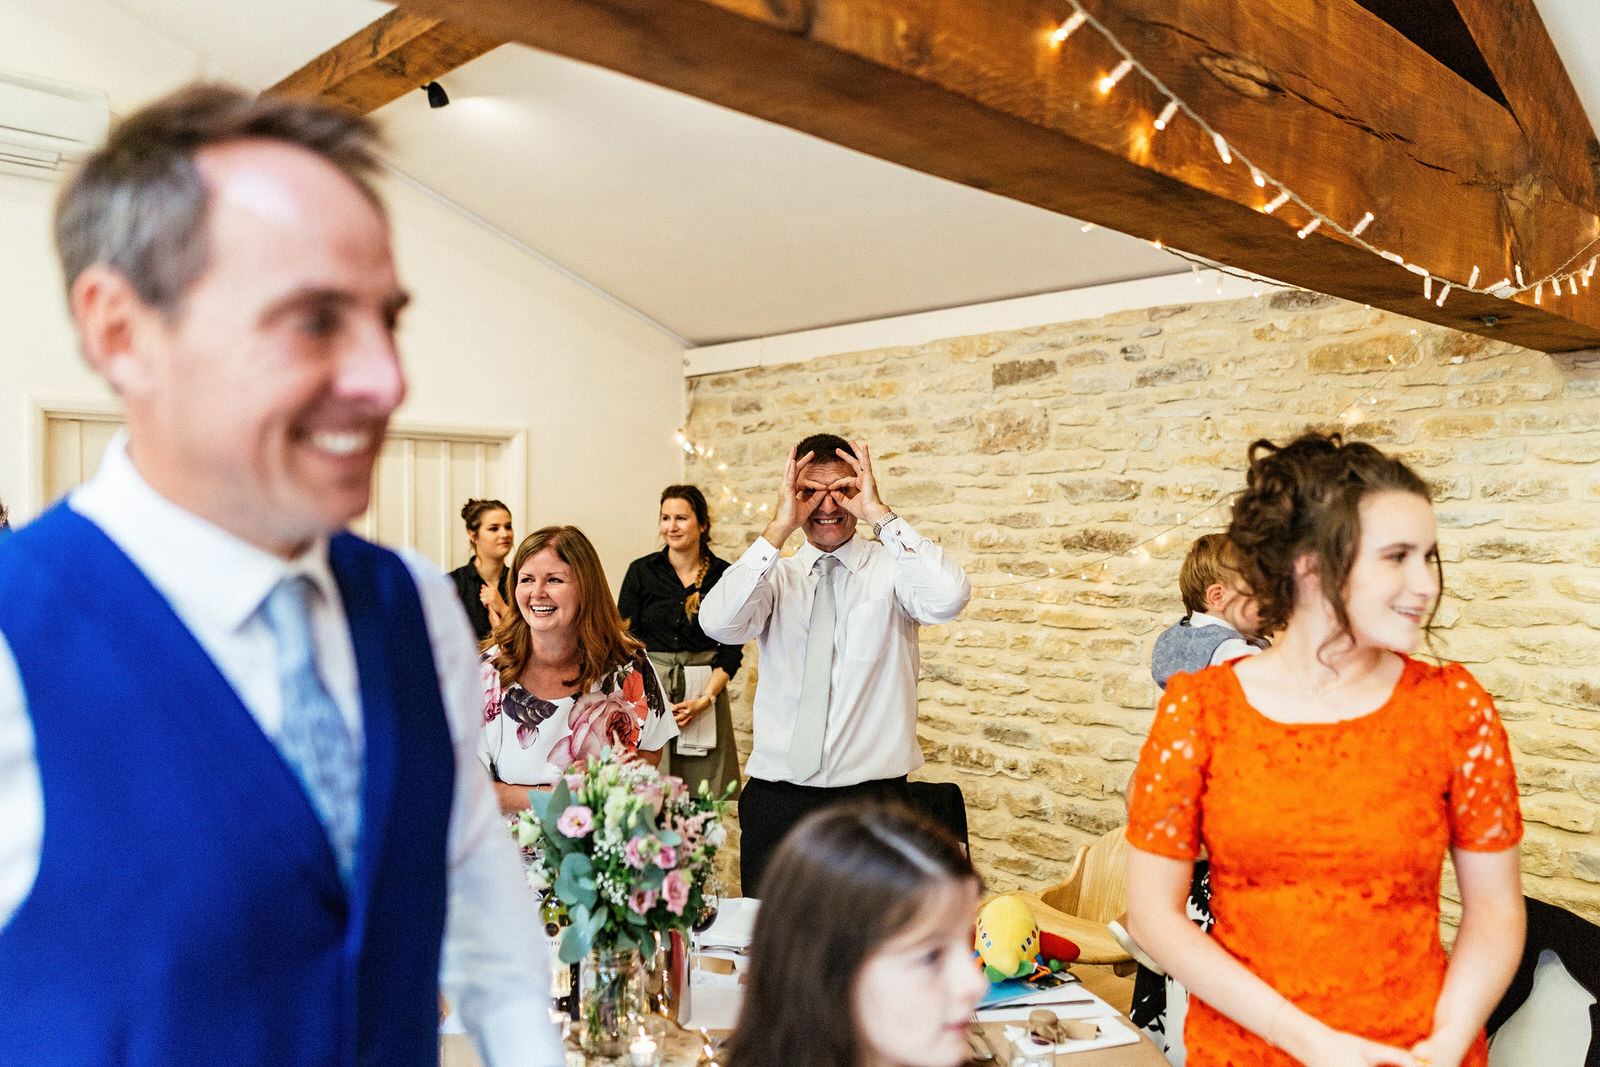 Winkworth-Farm-Wedding-Photographer-110.jpg